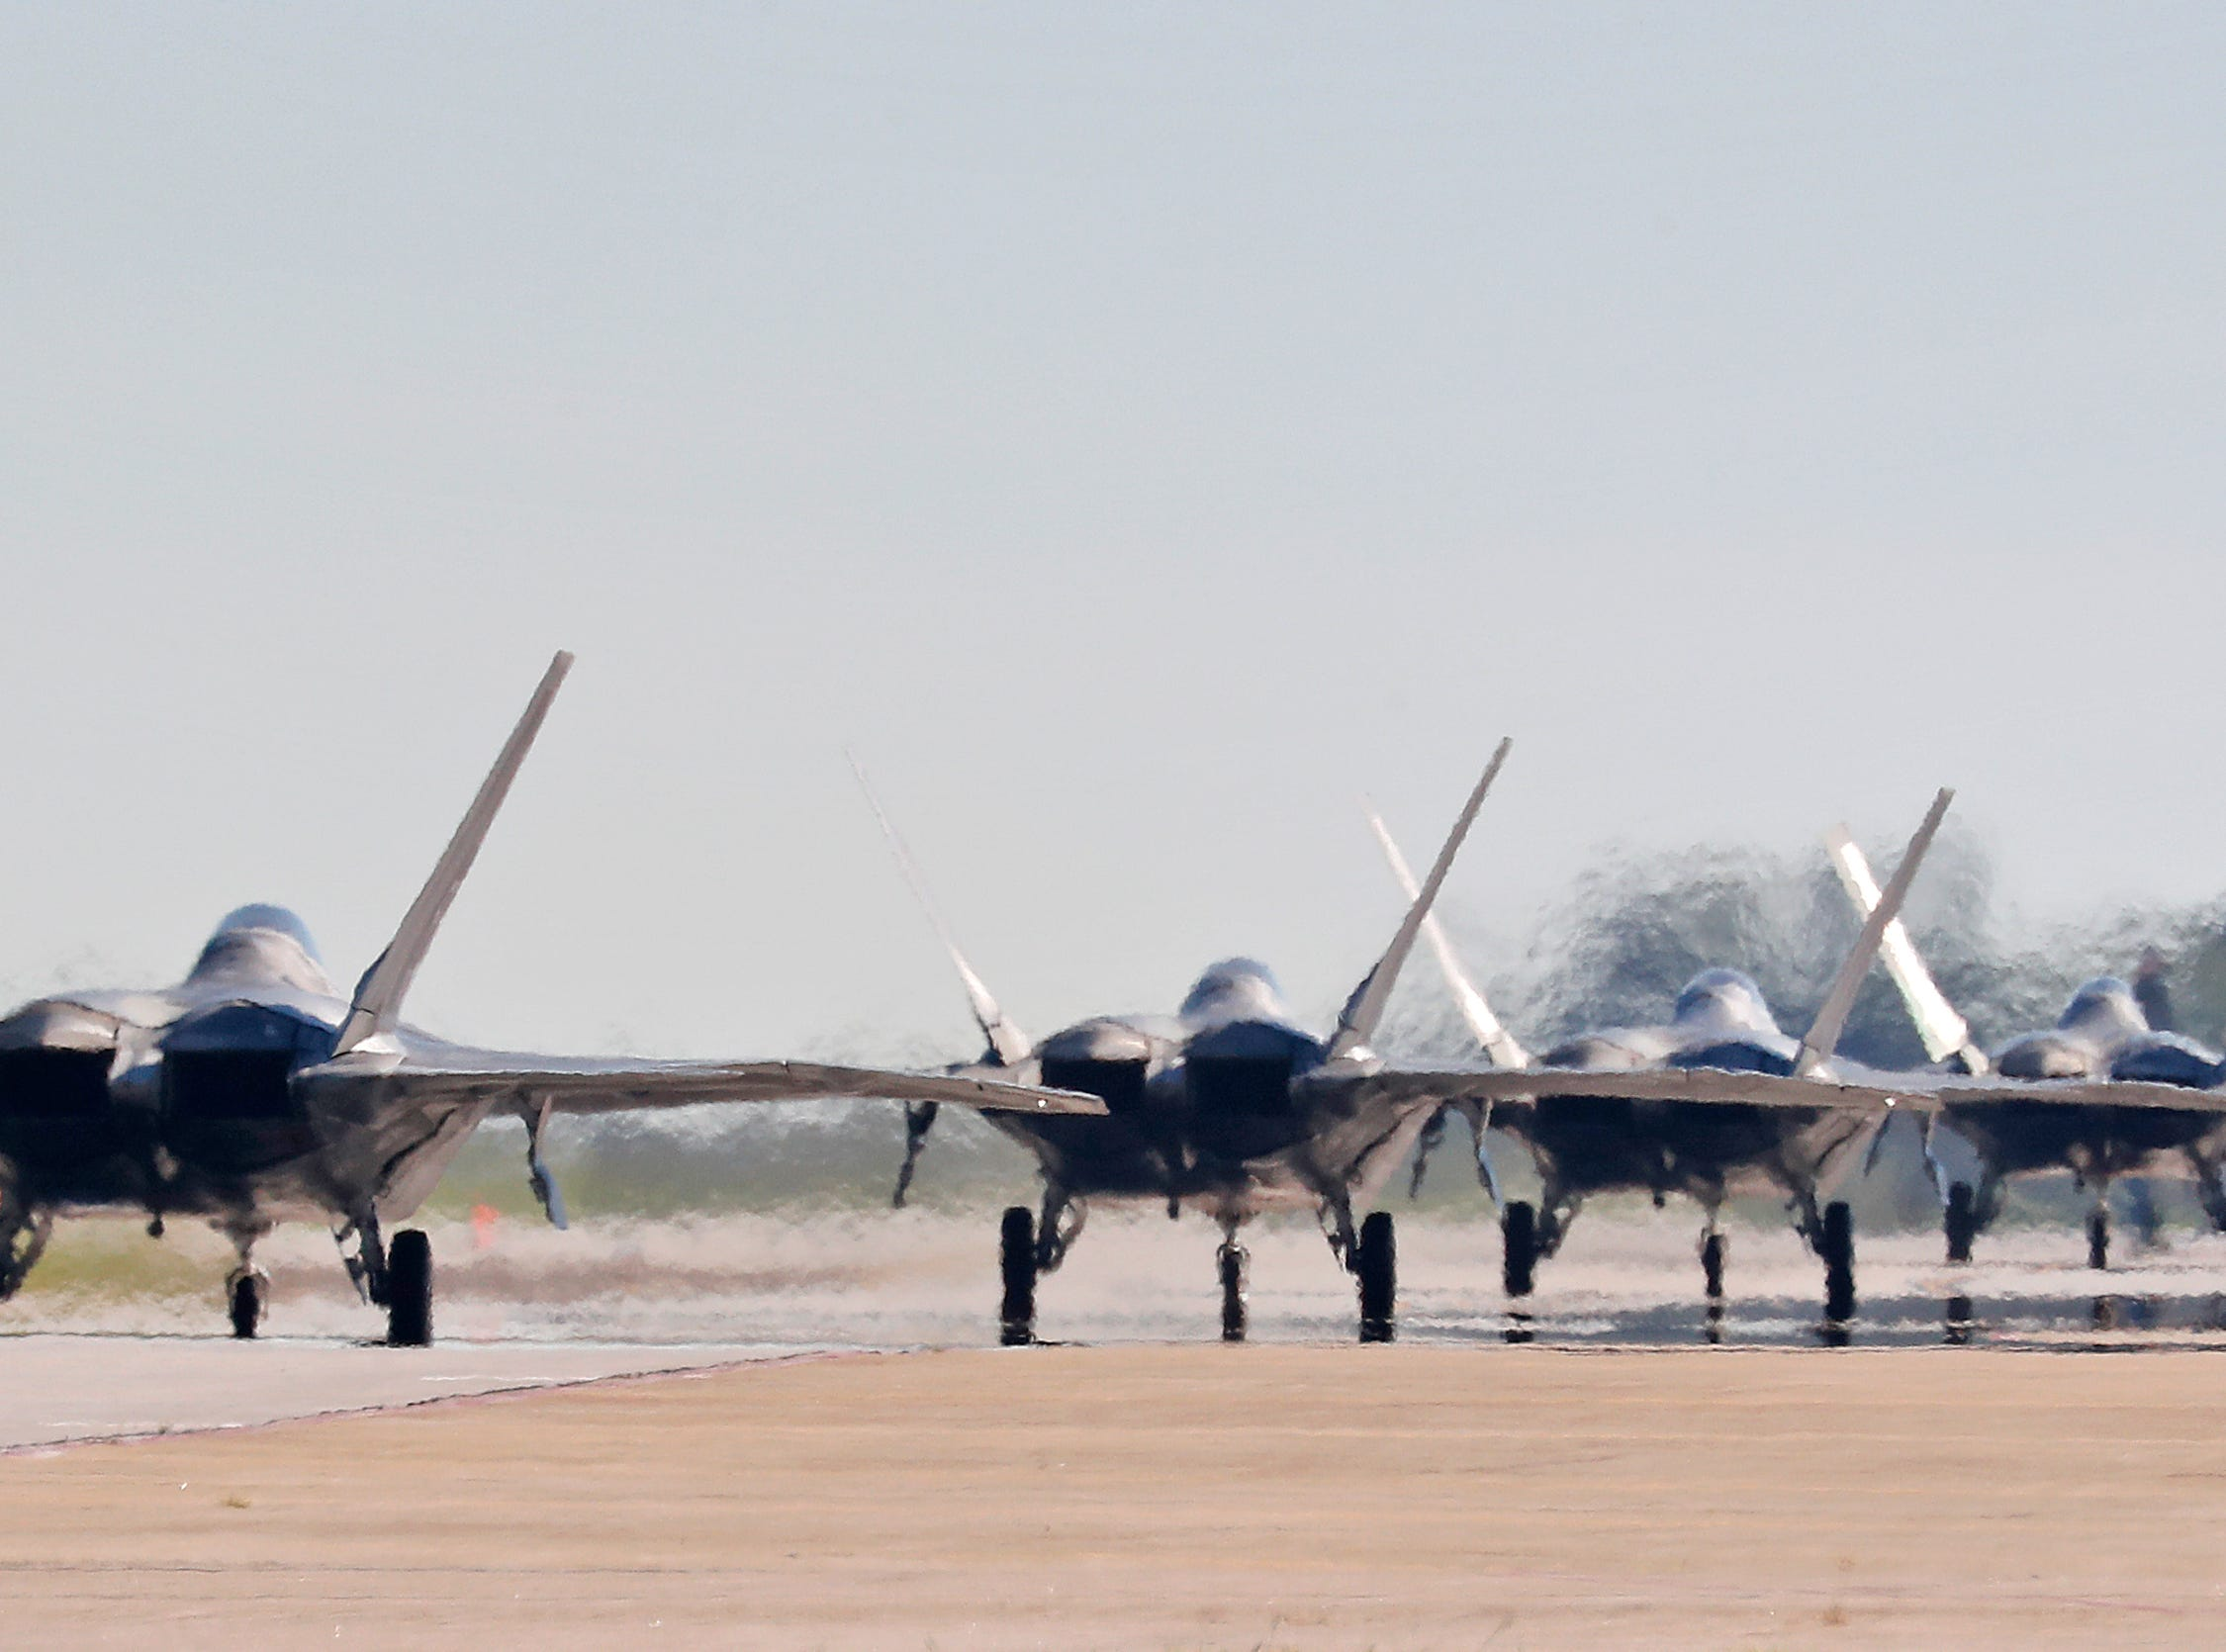 F-22s taxi down the runway as they prepare to depart Langley Air Force Base, Va., Tuesday morning, Sept. 11, 2018, as Hurricane Florence approaches the Eastern Seaboard. Officials from Joint Base Langley-Eustis in Hampton said the base's F-22 Raptors and T-38 Talon training jets, as a precaution, were headed for Rickenbacker Air National Guard Base in central Ohio.